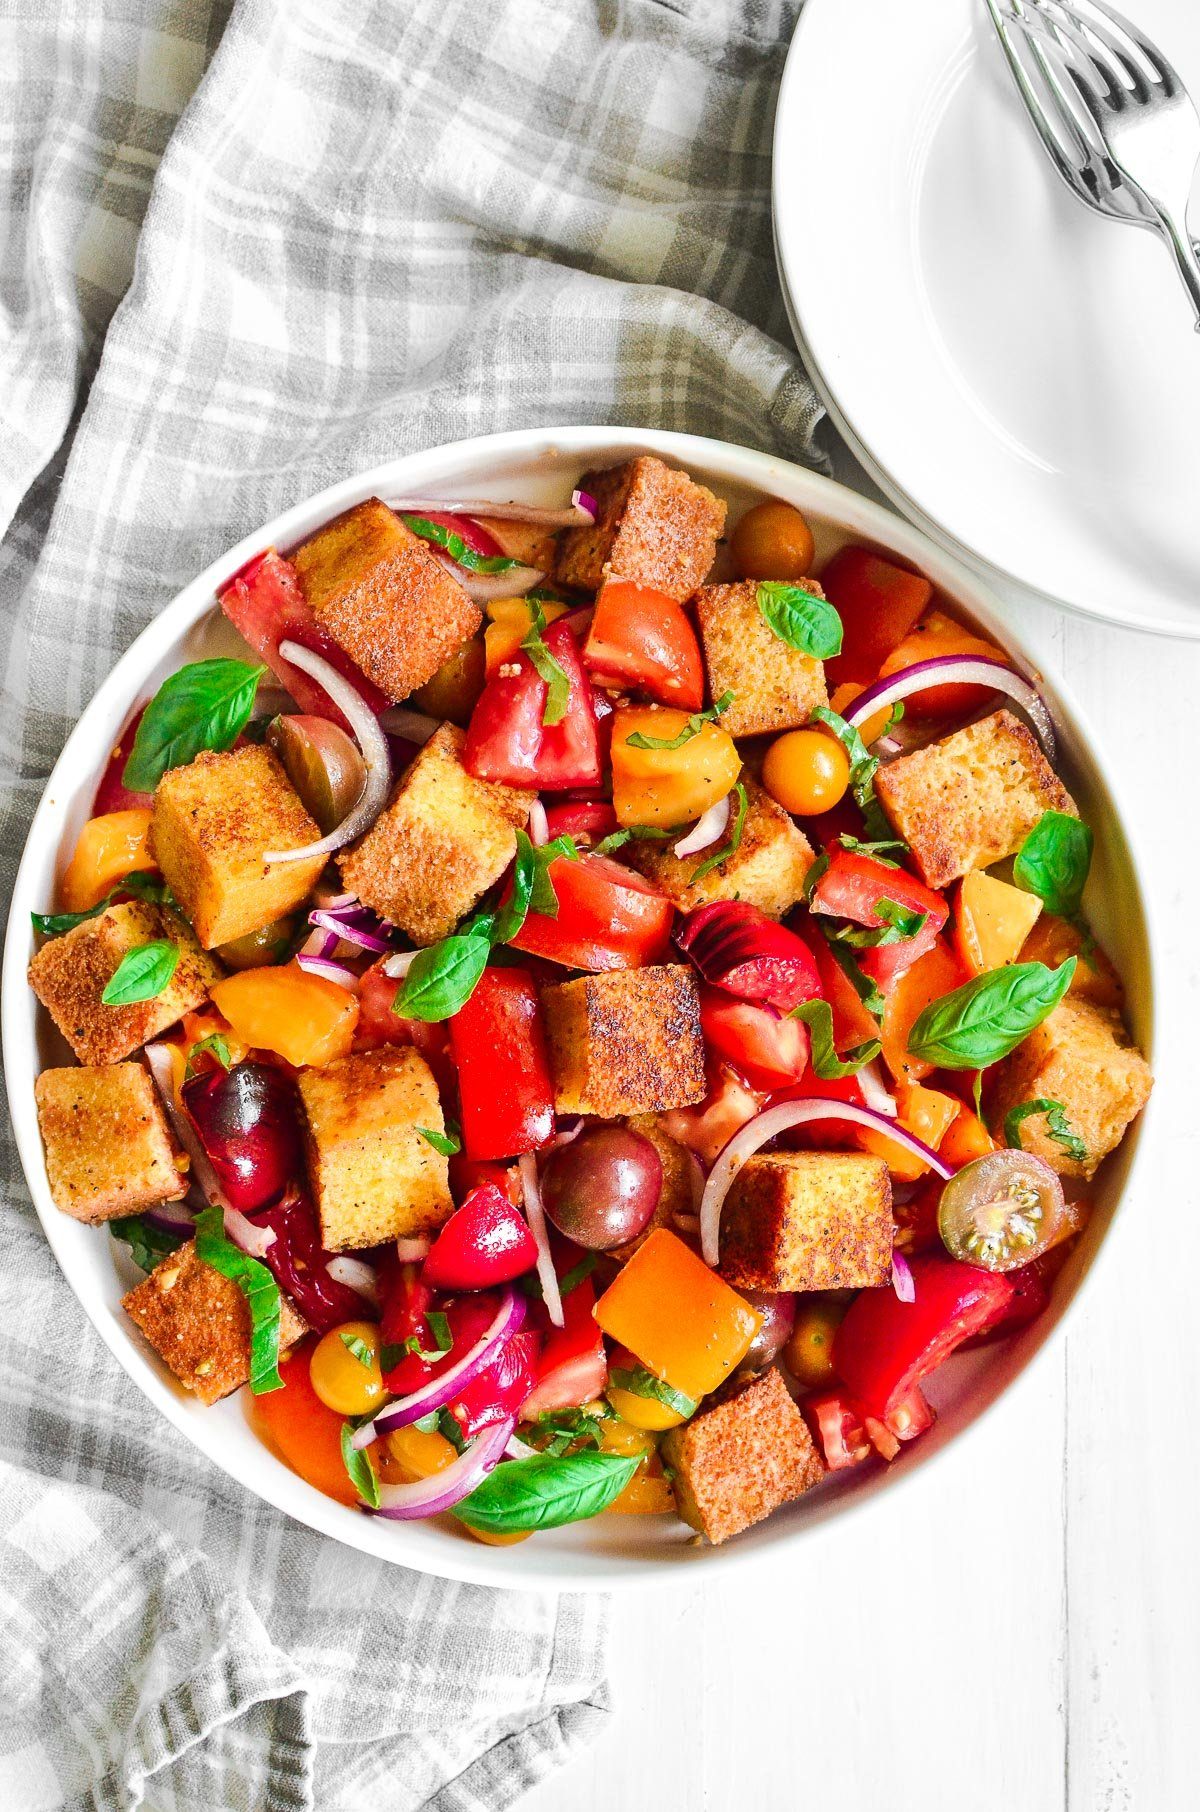 A plate of cornbread panzanella on a white surface with a plaid linen towel and white bowls and forks.